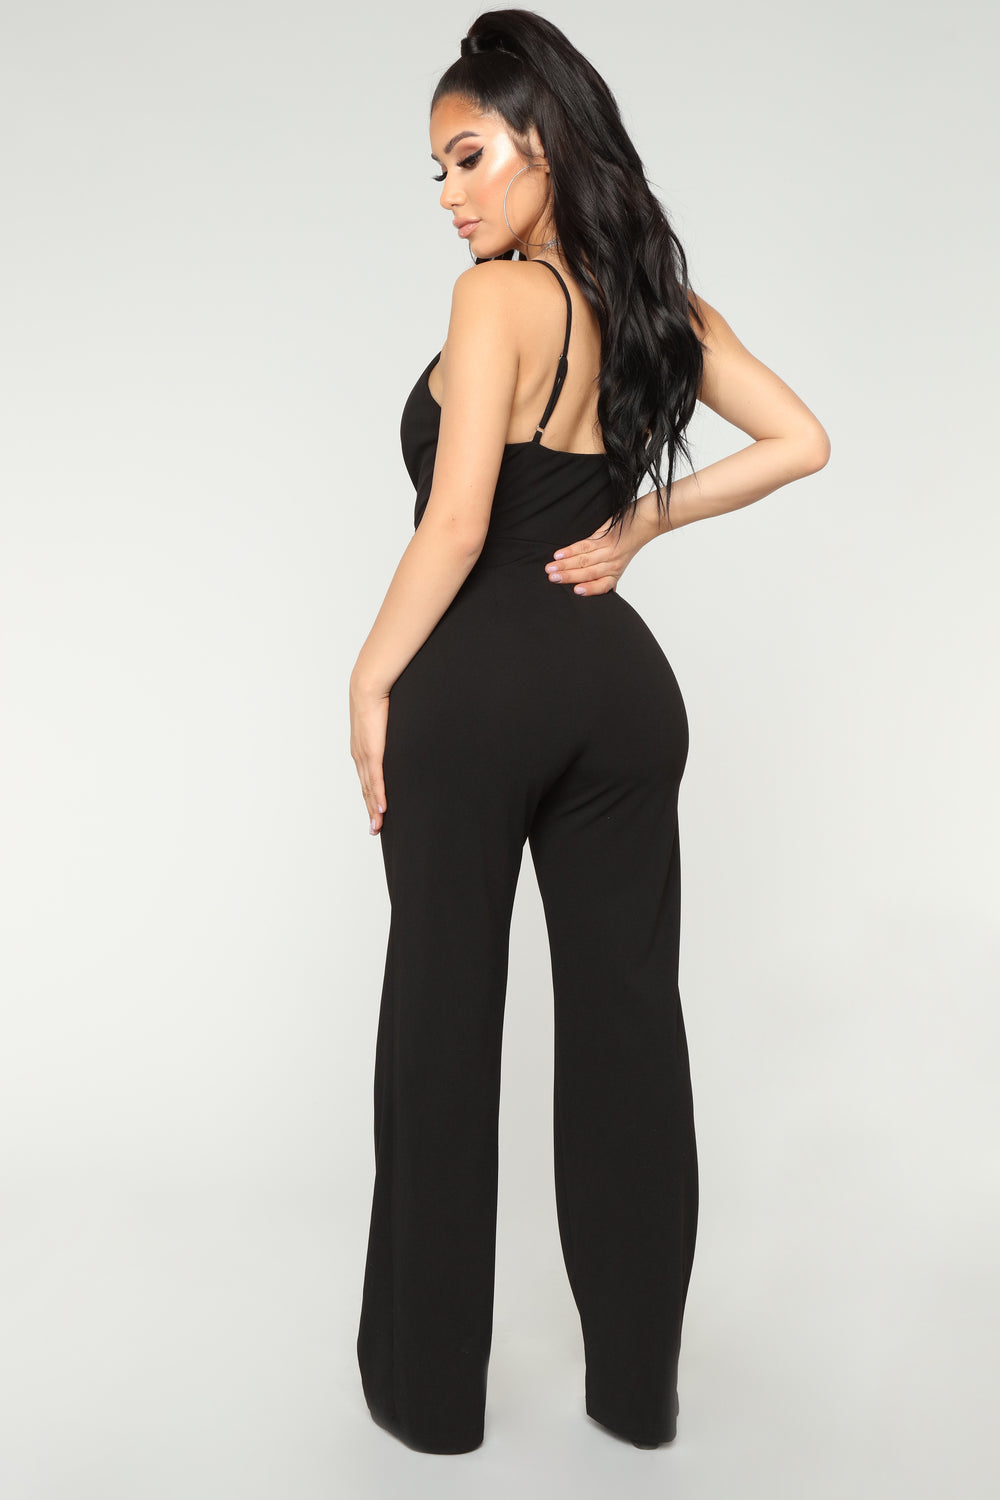 Simply The Best Jumpsuit - Black